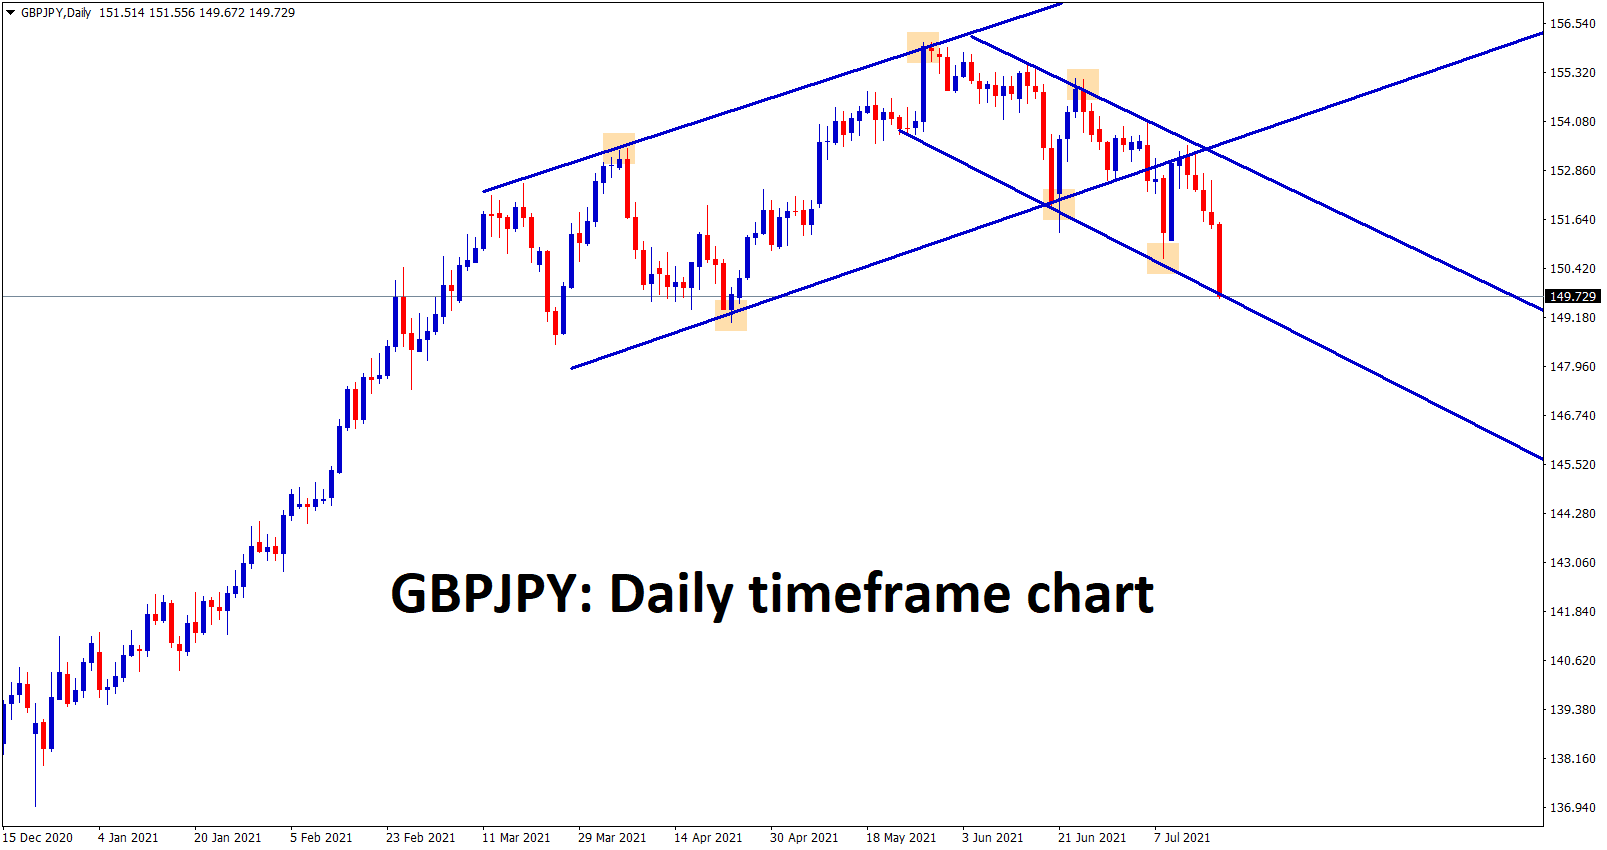 GBPJPY is moving in a Descending Channel